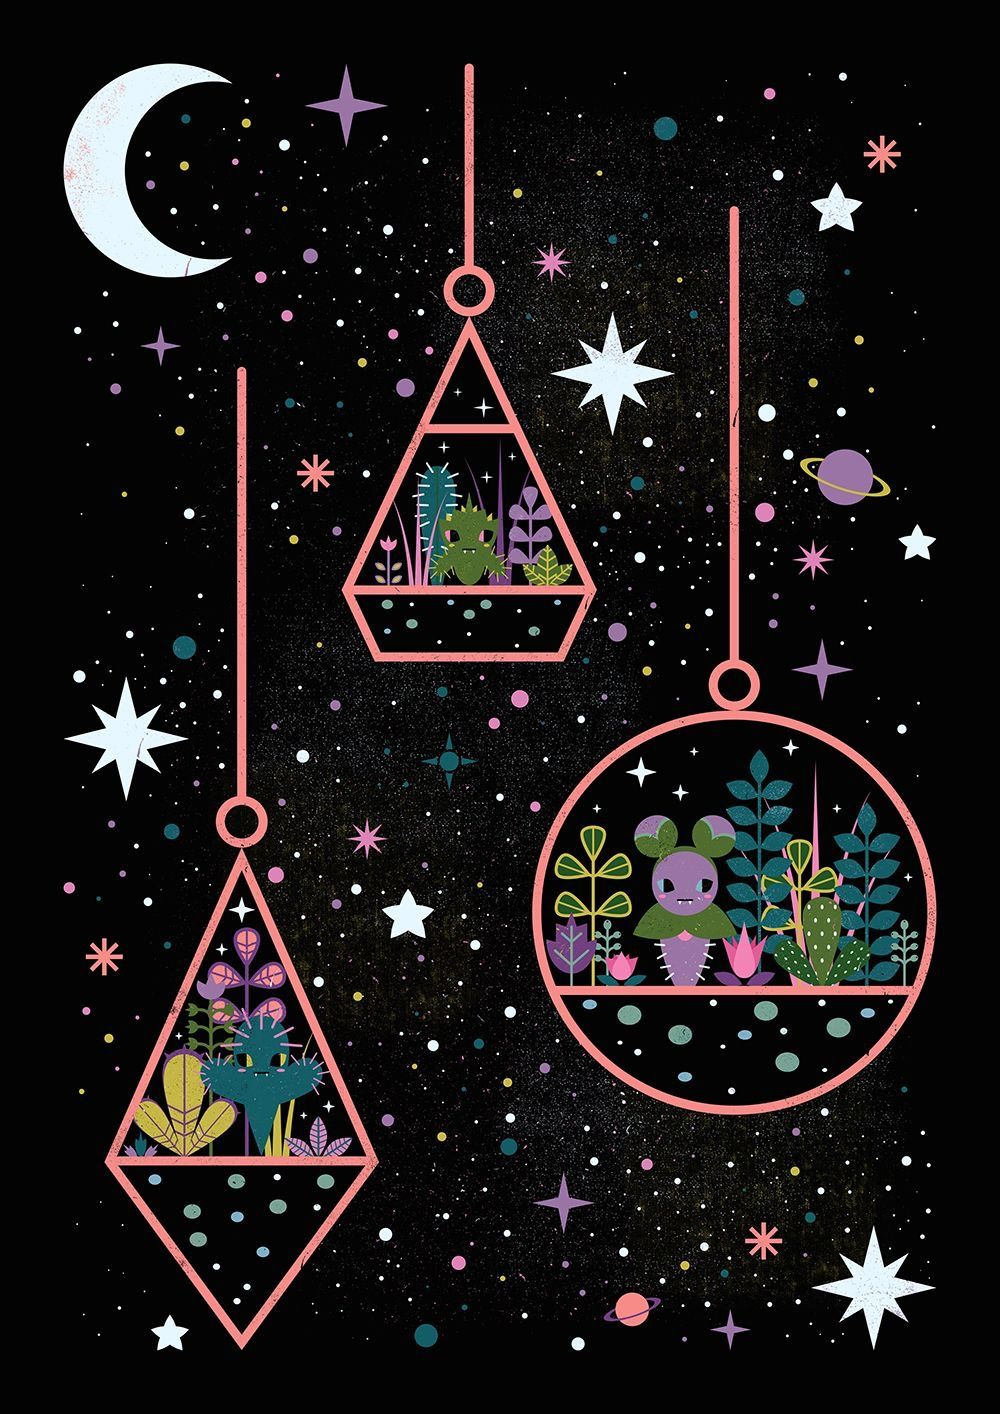 Pin By Joanna Chang On Art Awesome Witchy Wallpaper Wallpaper Cute Wallpapers